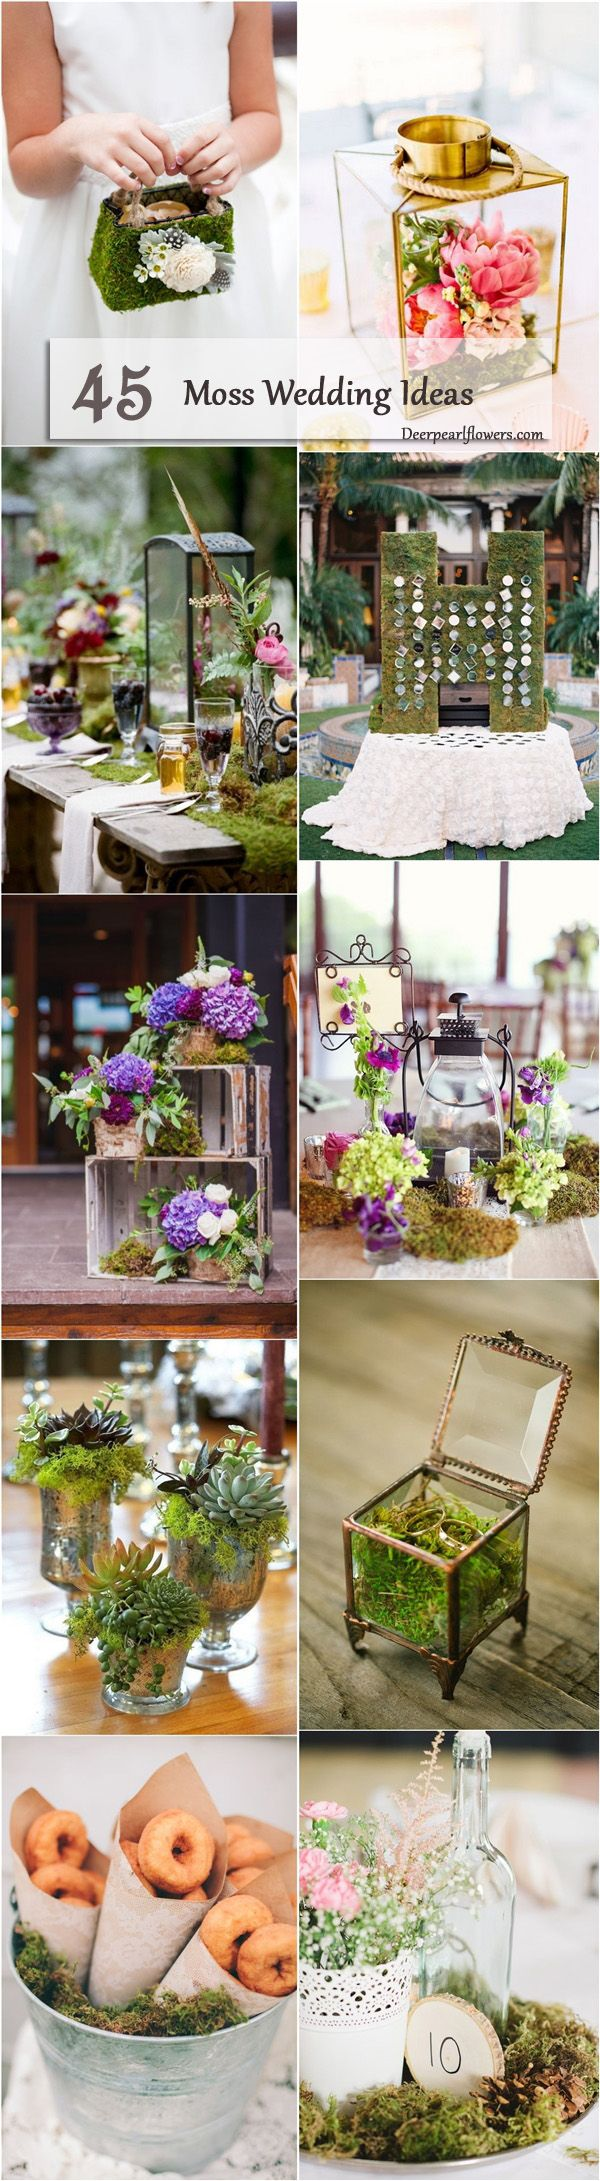 Woodland moss wedding decor ideas